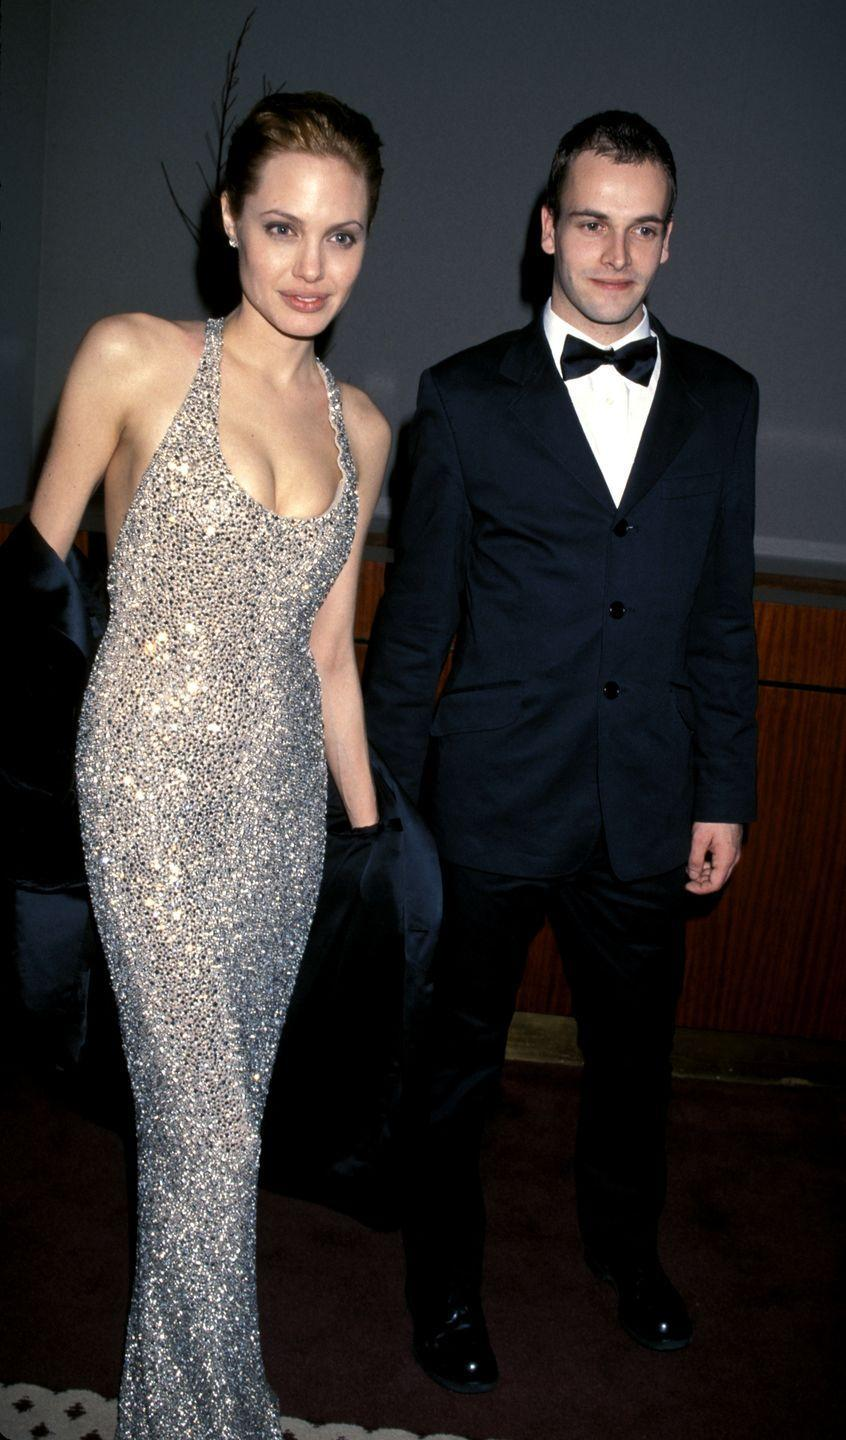 """<p>Angelina's marriage to Brad Pitt is well-documented, but it's often forgotten that her first husband was Jonny, who currently stars as Sherlock Holmes on the CBS procedural <em>Elementary</em>. After appearing in the 1995 movie<em> Hackers</em> together, they got hitched in 1996 with Angelina wearing black rubber pants and a white shirt with Jonny's name written in her own blood on the back. """"It's your husband,"""" she explained to the <em><a href=""""https://www.nytimes.com/1996/08/25/movies/following-ambivalently-in-mom-or-dad-s-footsteps.html?pagewanted=all"""" rel=""""nofollow noopener"""" target=""""_blank"""" data-ylk=""""slk:New York Times"""" class=""""link rapid-noclick-resp"""">New York Times</a> </em>that year. """"You're about to marry him. You can sacrifice a little to make it really special."""" They divorced in 2000, but in May 2014, Angelina <a href=""""https://www.usmagazine.com/celebrity-news/news/angelina-jolie-ex-husband-jonny-lee-miller-is-still-a-great-friend-2014285/"""" rel=""""nofollow noopener"""" target=""""_blank"""" data-ylk=""""slk:called him"""" class=""""link rapid-noclick-resp"""">called him</a> """"still a great friend.""""</p>"""